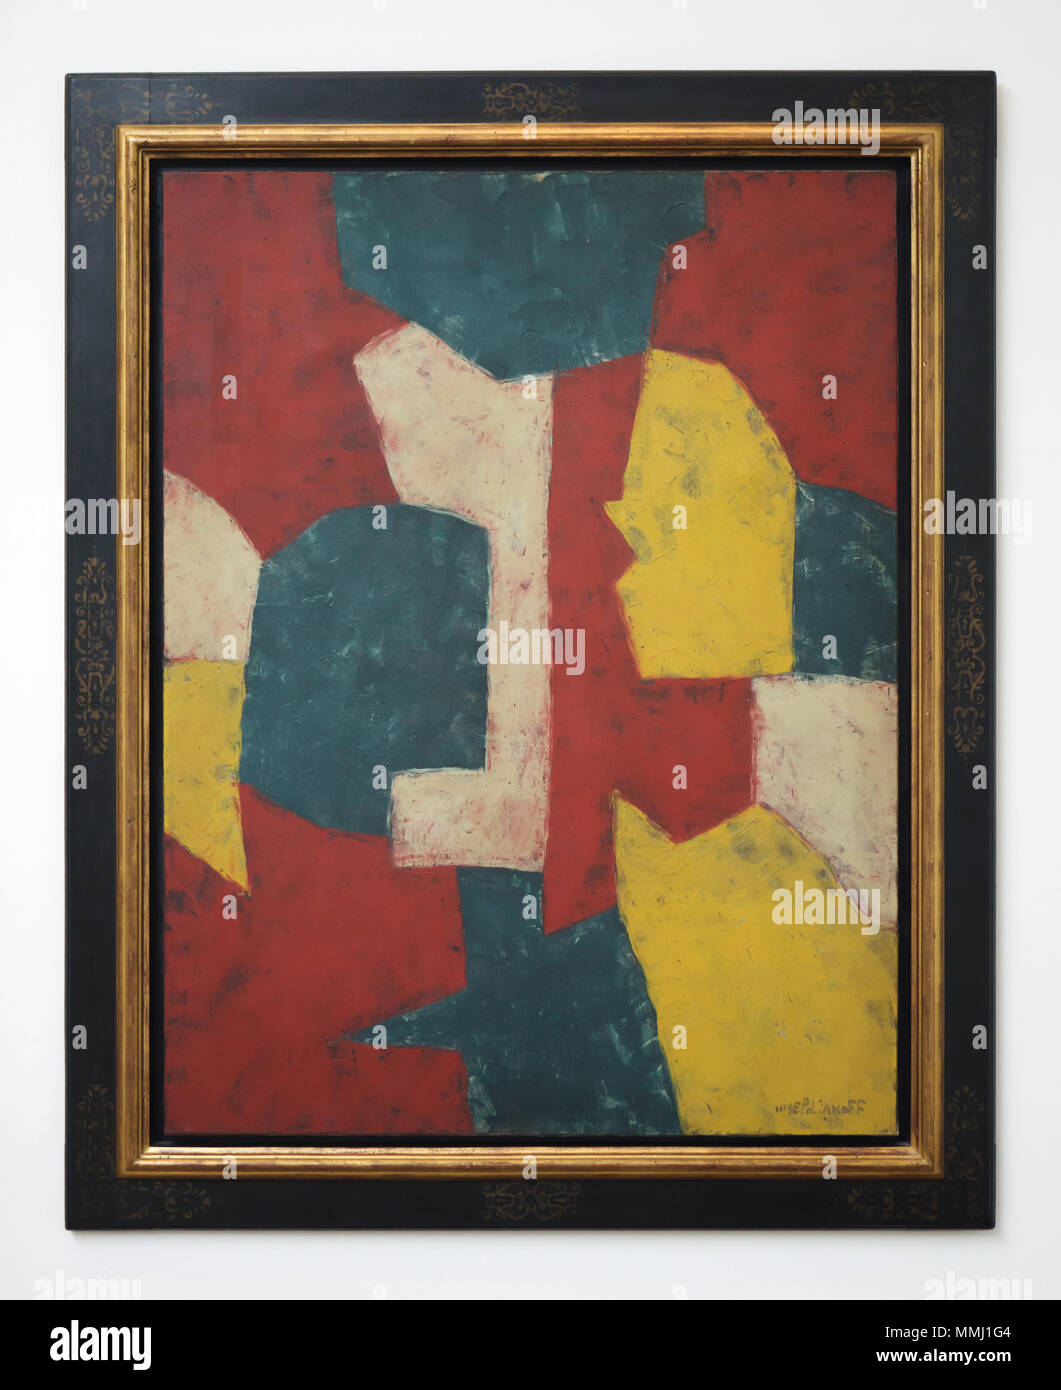 Painting 'Composition in Red, Yellow, Green and White' (1953) by Russian-French modernist painter Serge Poliakoff on display at the exhibition 'WOW! The Heidi Horten Collection' in the Leopold Museum in Vienna, Austria. The exhibition presenting the masterpieces from one of the most impressive European private collections runs till 29 July 2018. - Stock Image